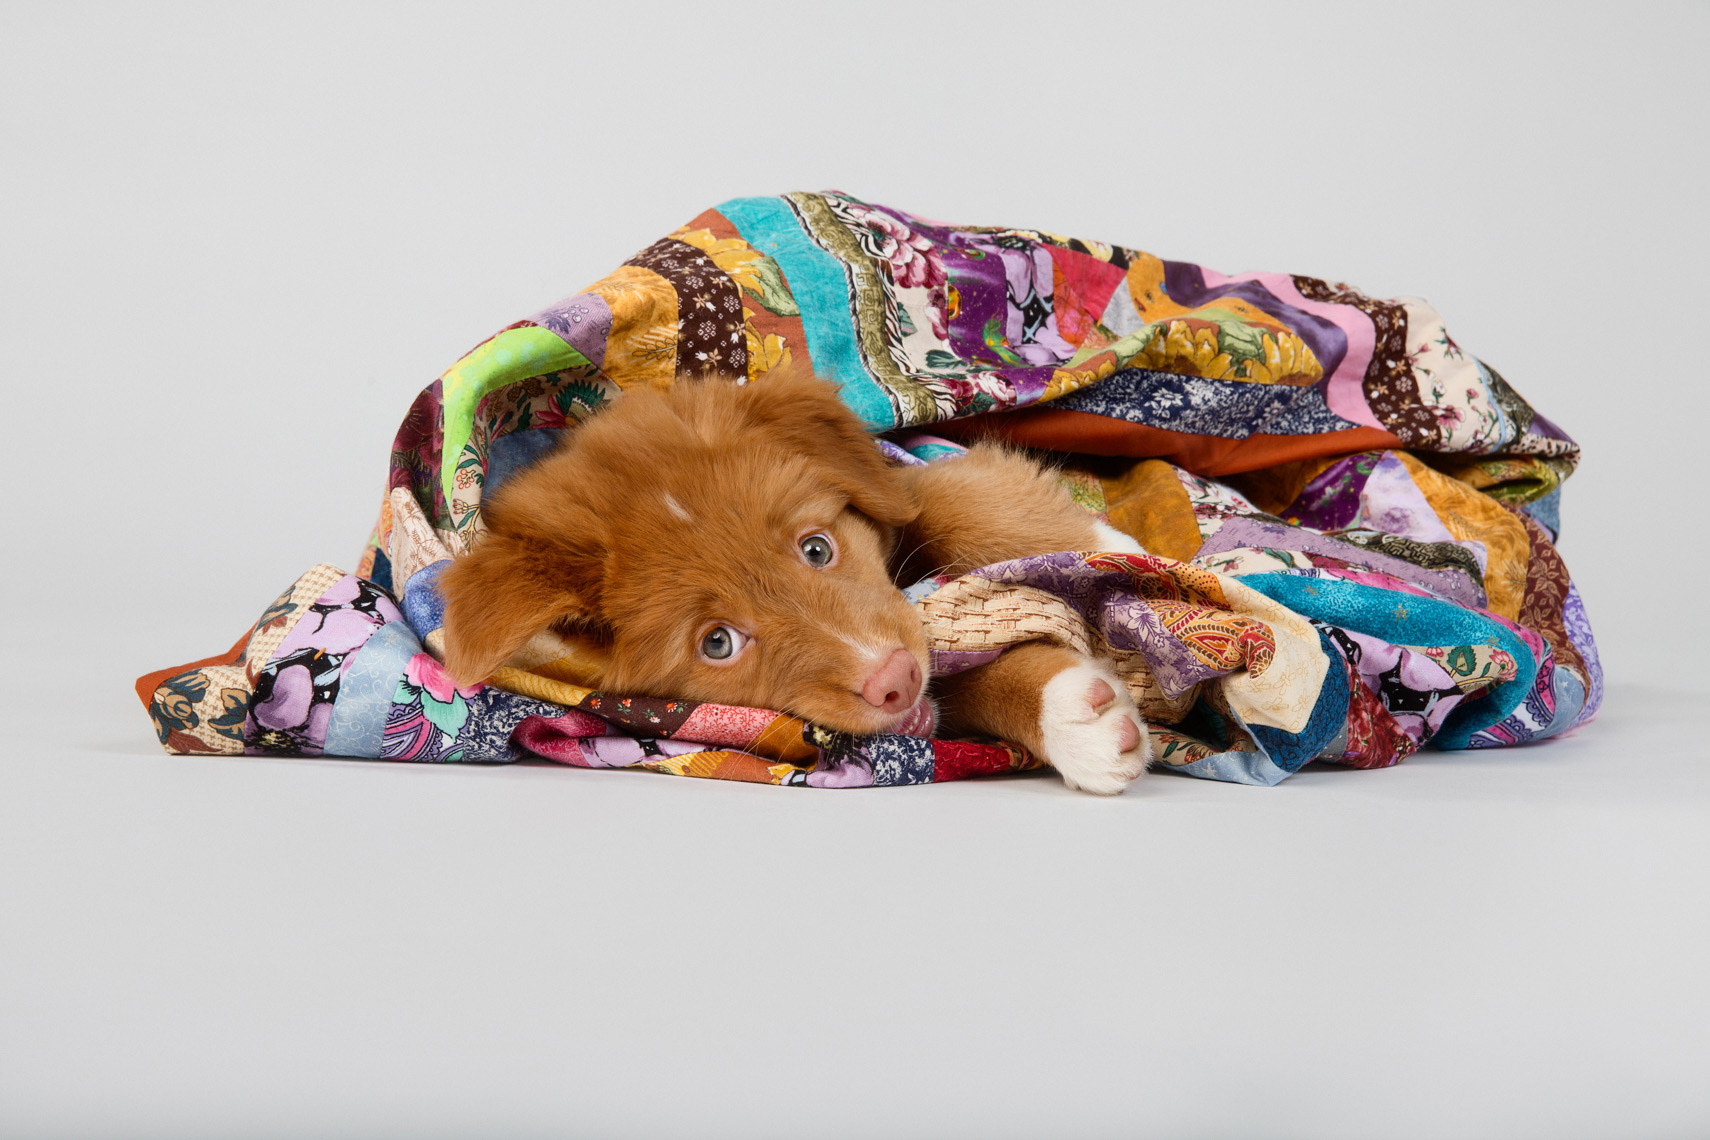 A puppy wrapped up in a blanket in studio